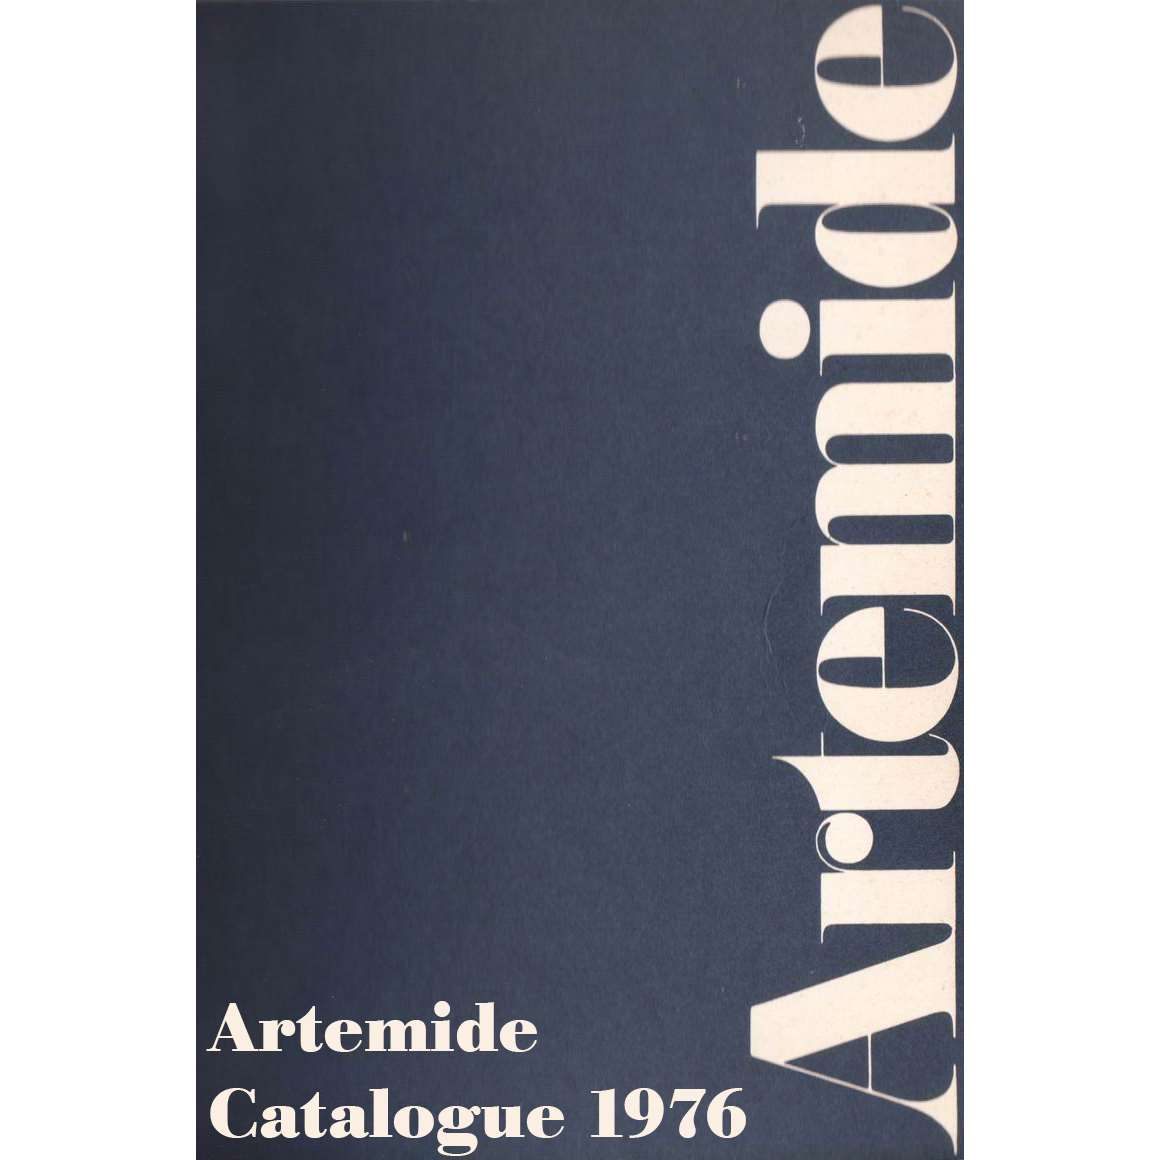 Vintage Lighting Catalogues - Artemide Catalogue 1976